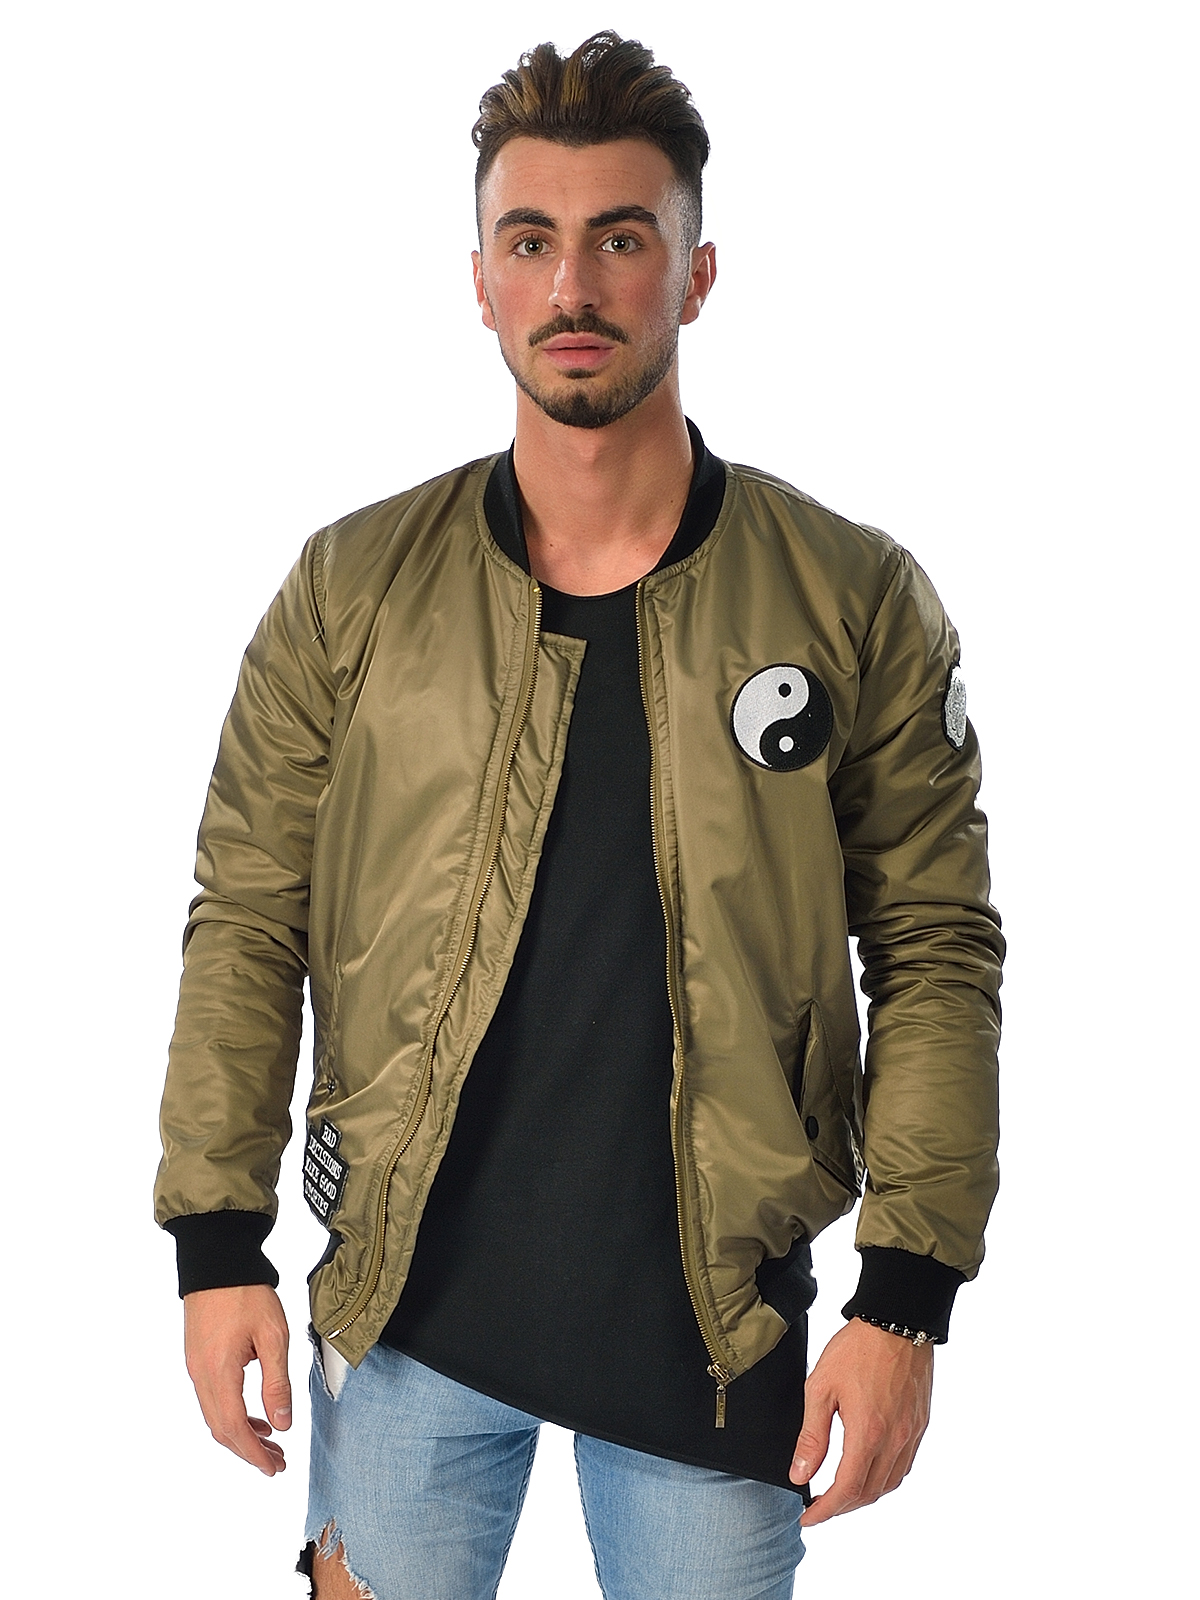 Yin Yang Bomber Jacket Men | Descy Official